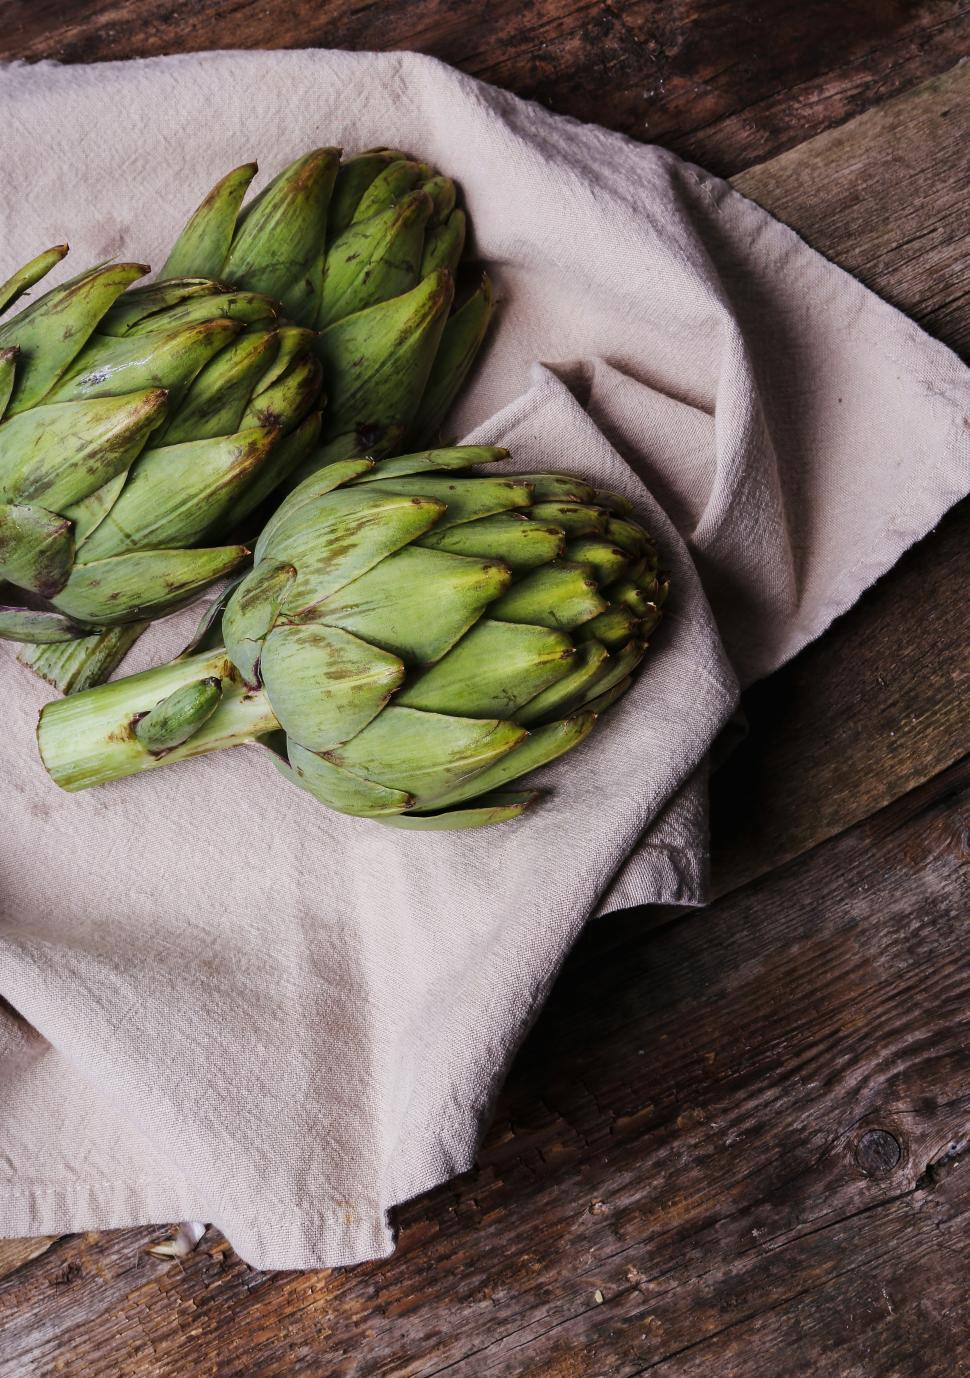 Download Free Stock Photo of Three Artichokes on natural fabric